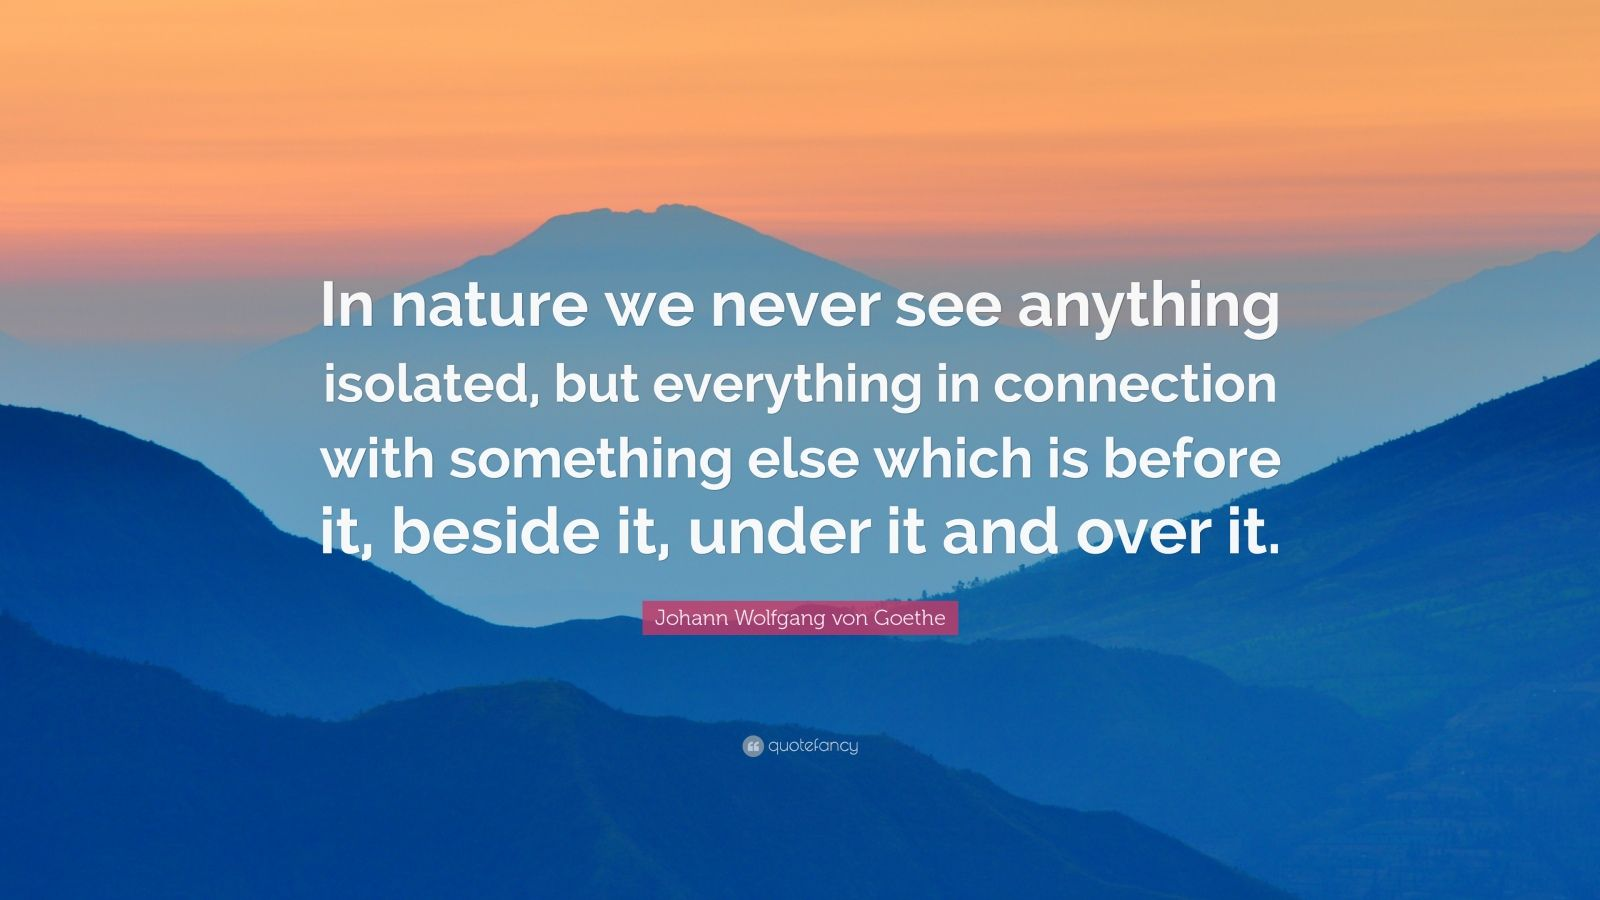 """Johann Wolfgang von Goethe Quote: """"In nature we never see anything isolated, but everything in connection with something else which is before it, beside it, under it and over it."""""""